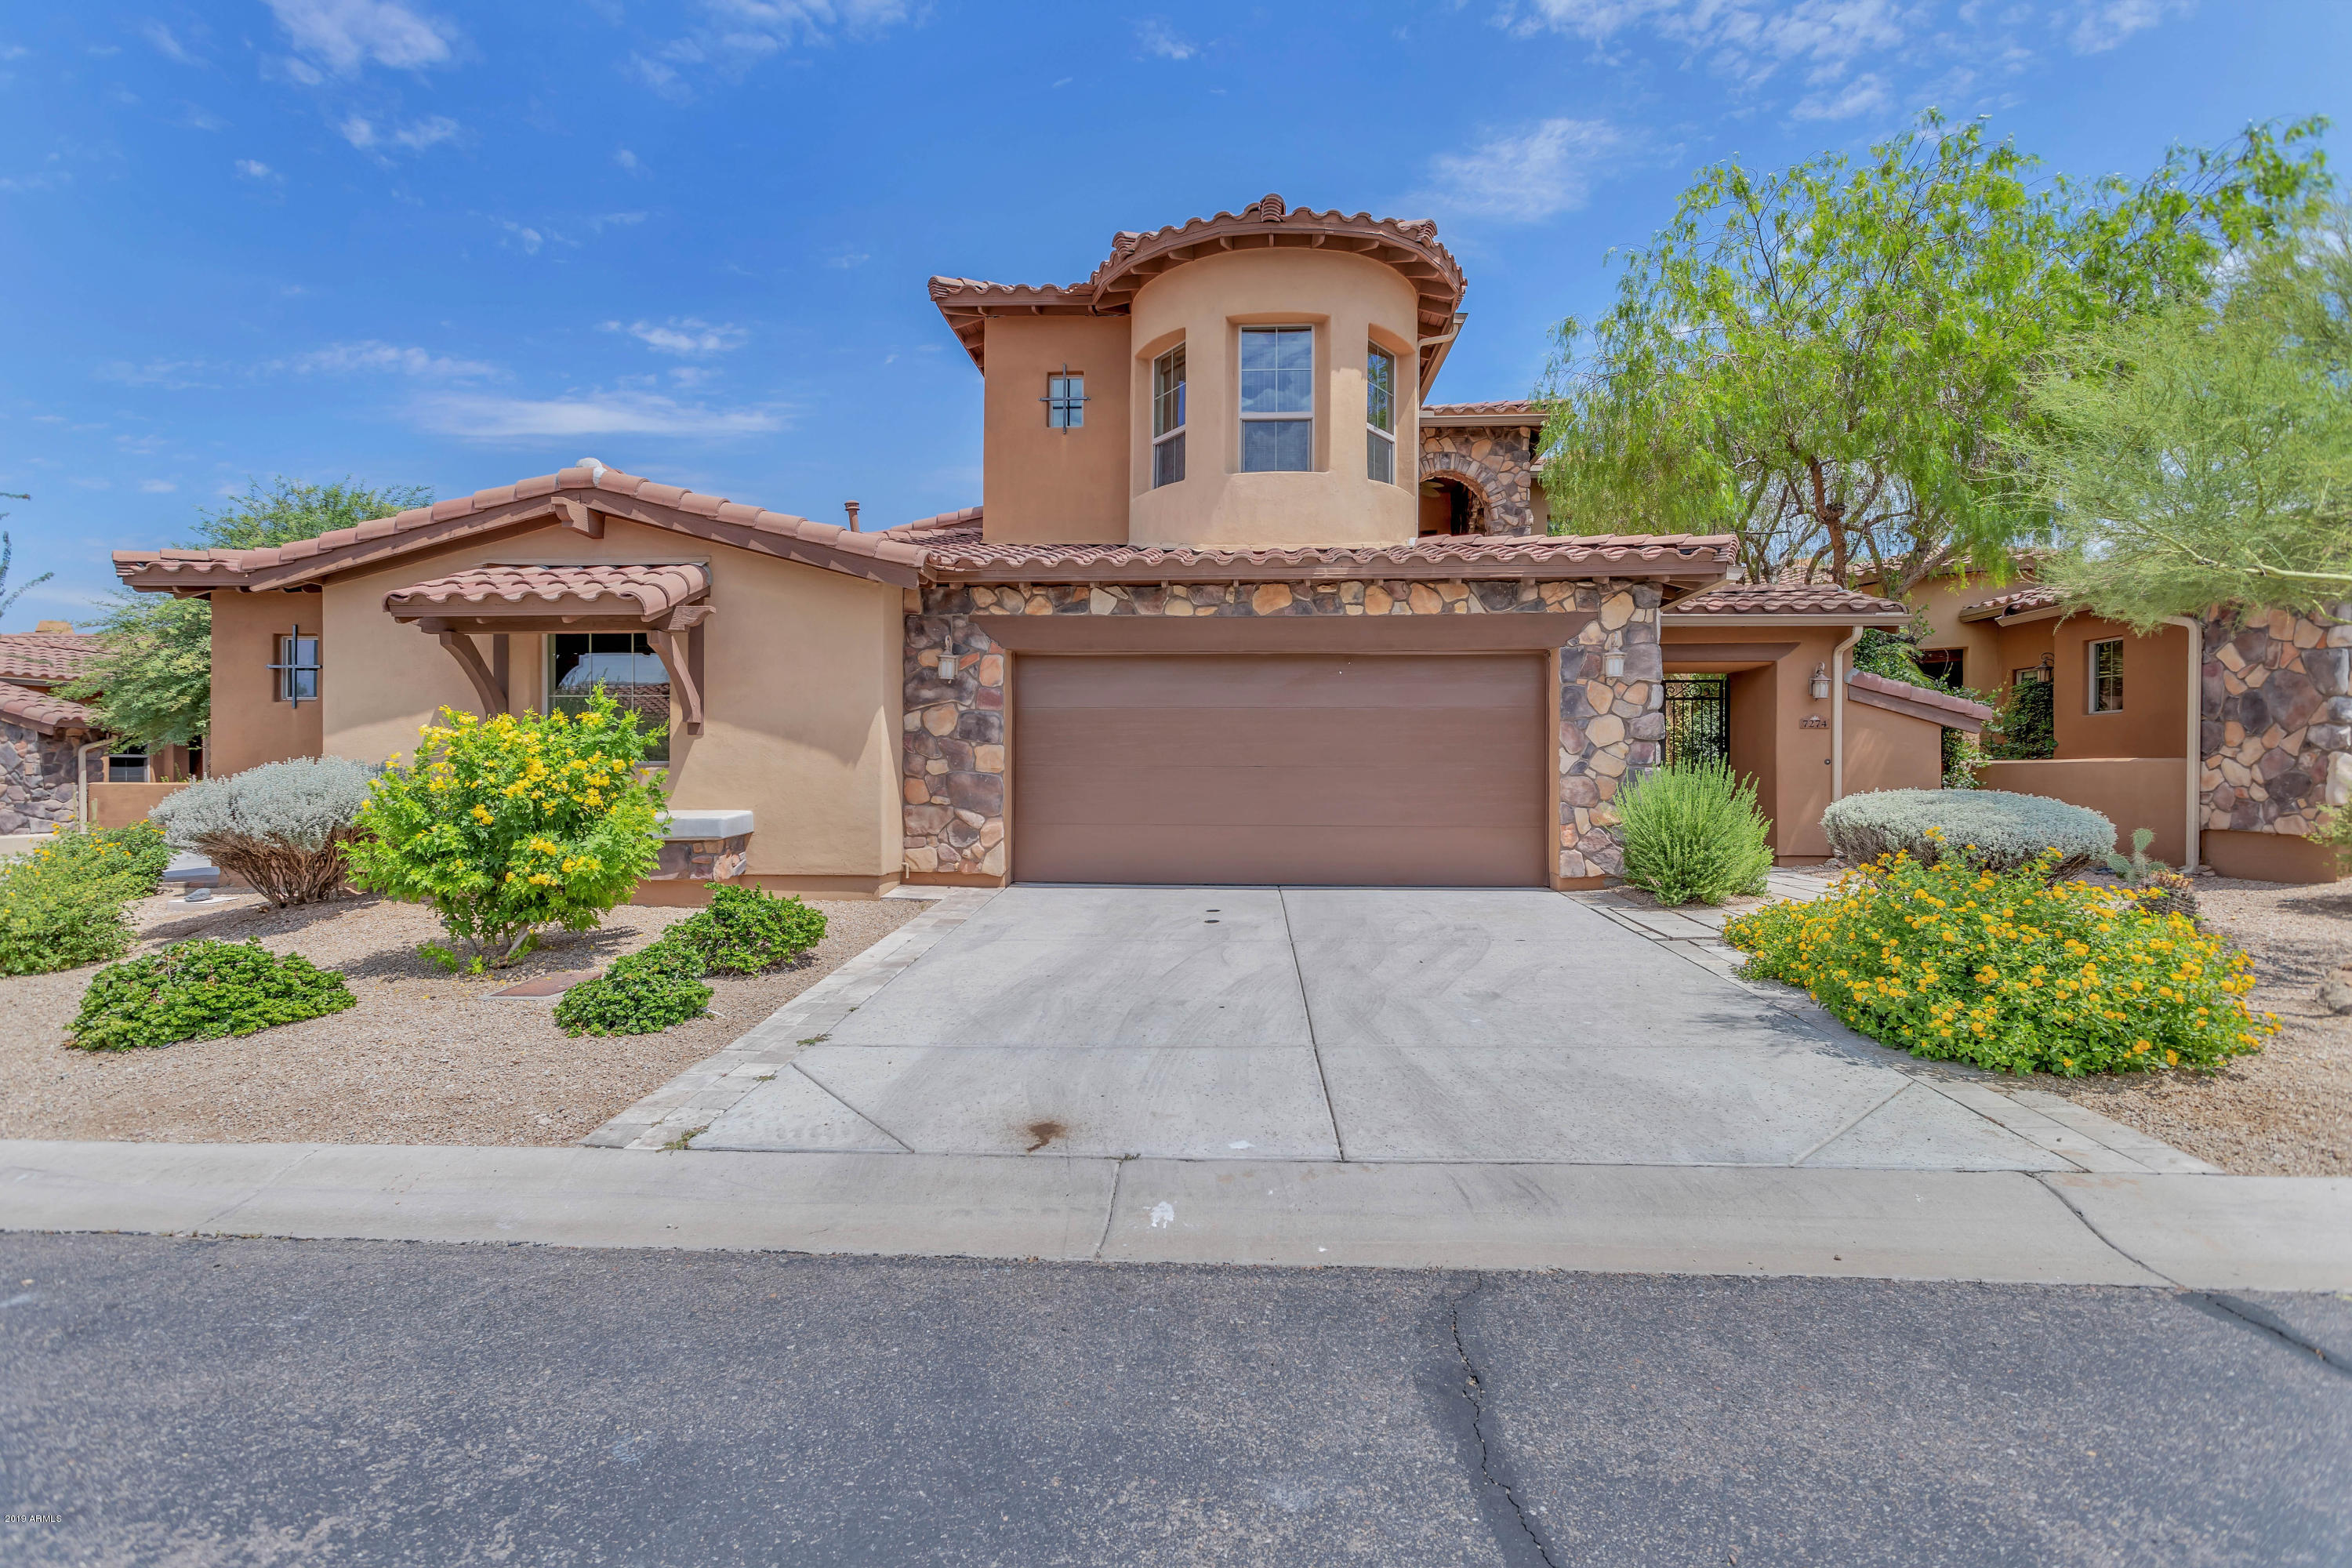 Photo of 7274 E ECLIPSE Drive, Scottsdale, AZ 85266